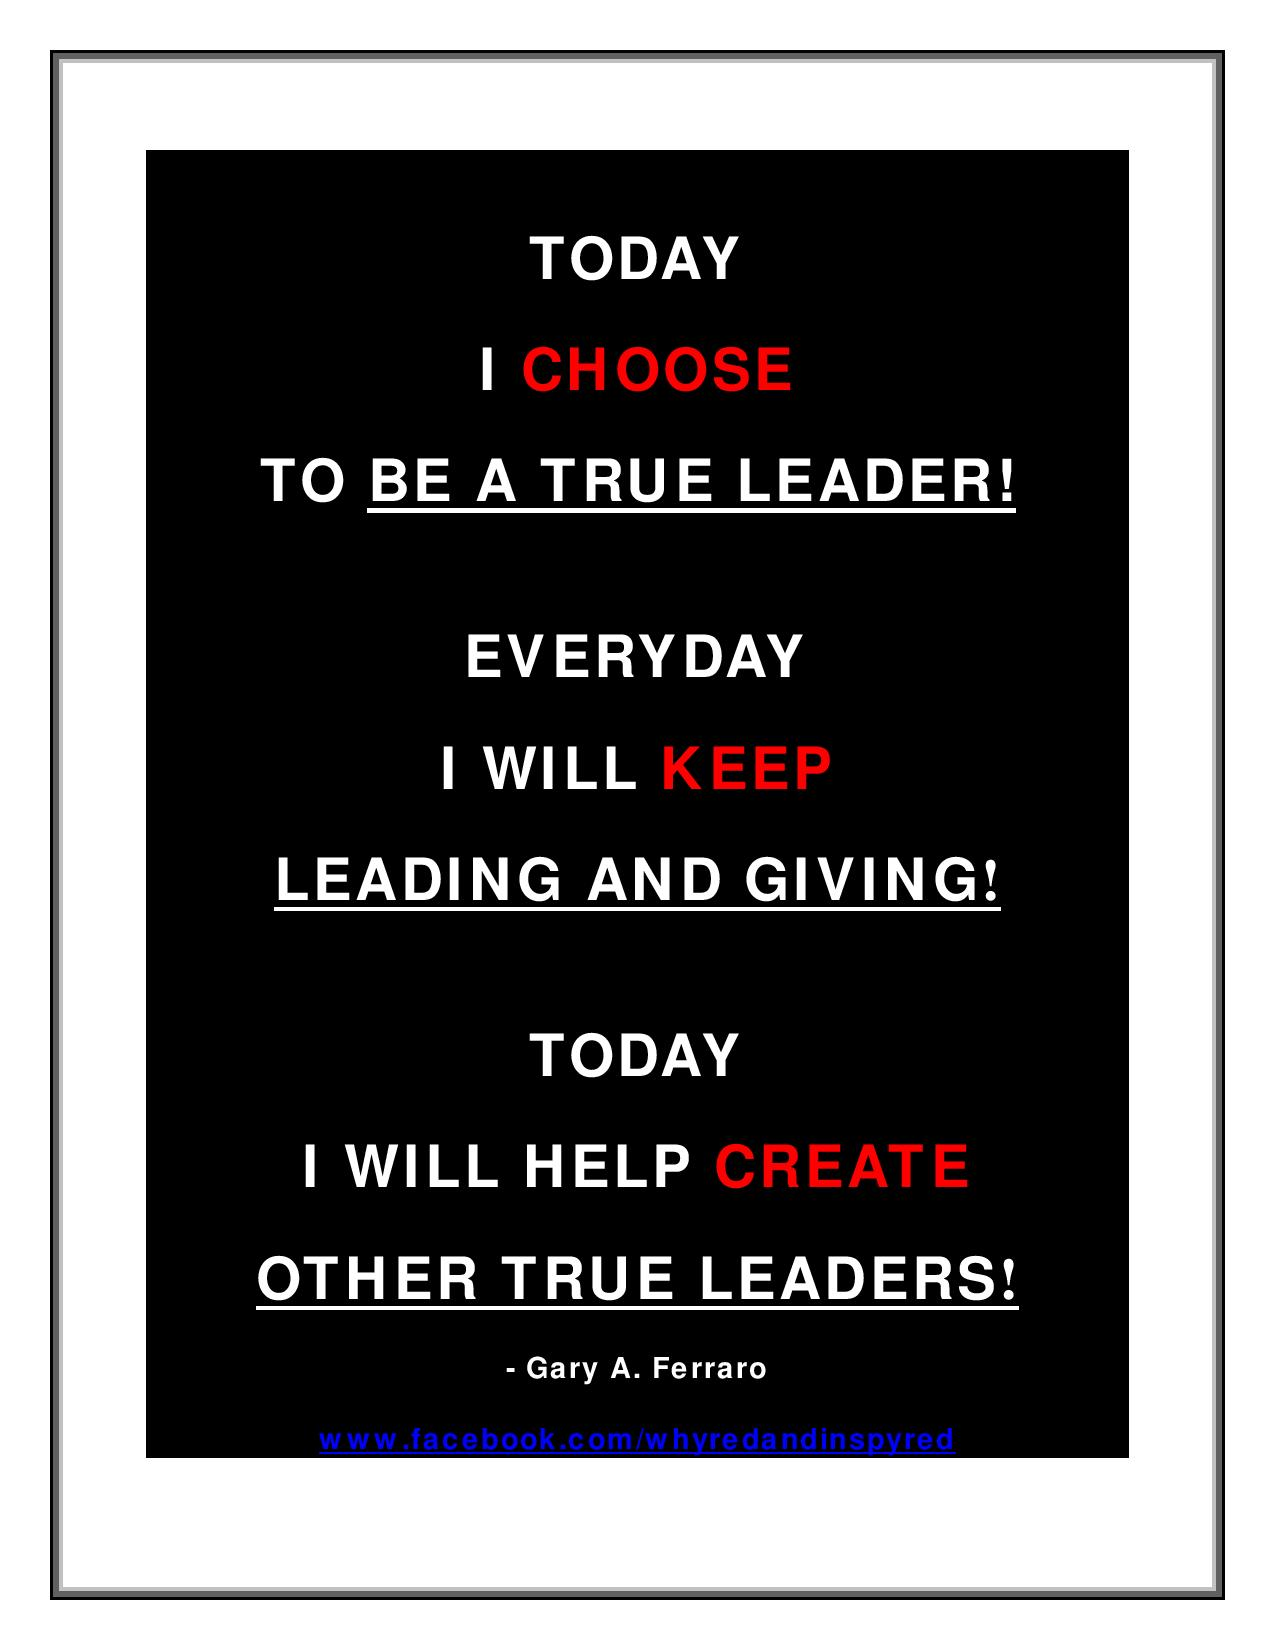 TODAY I CHOOSE TO BE A TRUE LEADER-BL-page-001